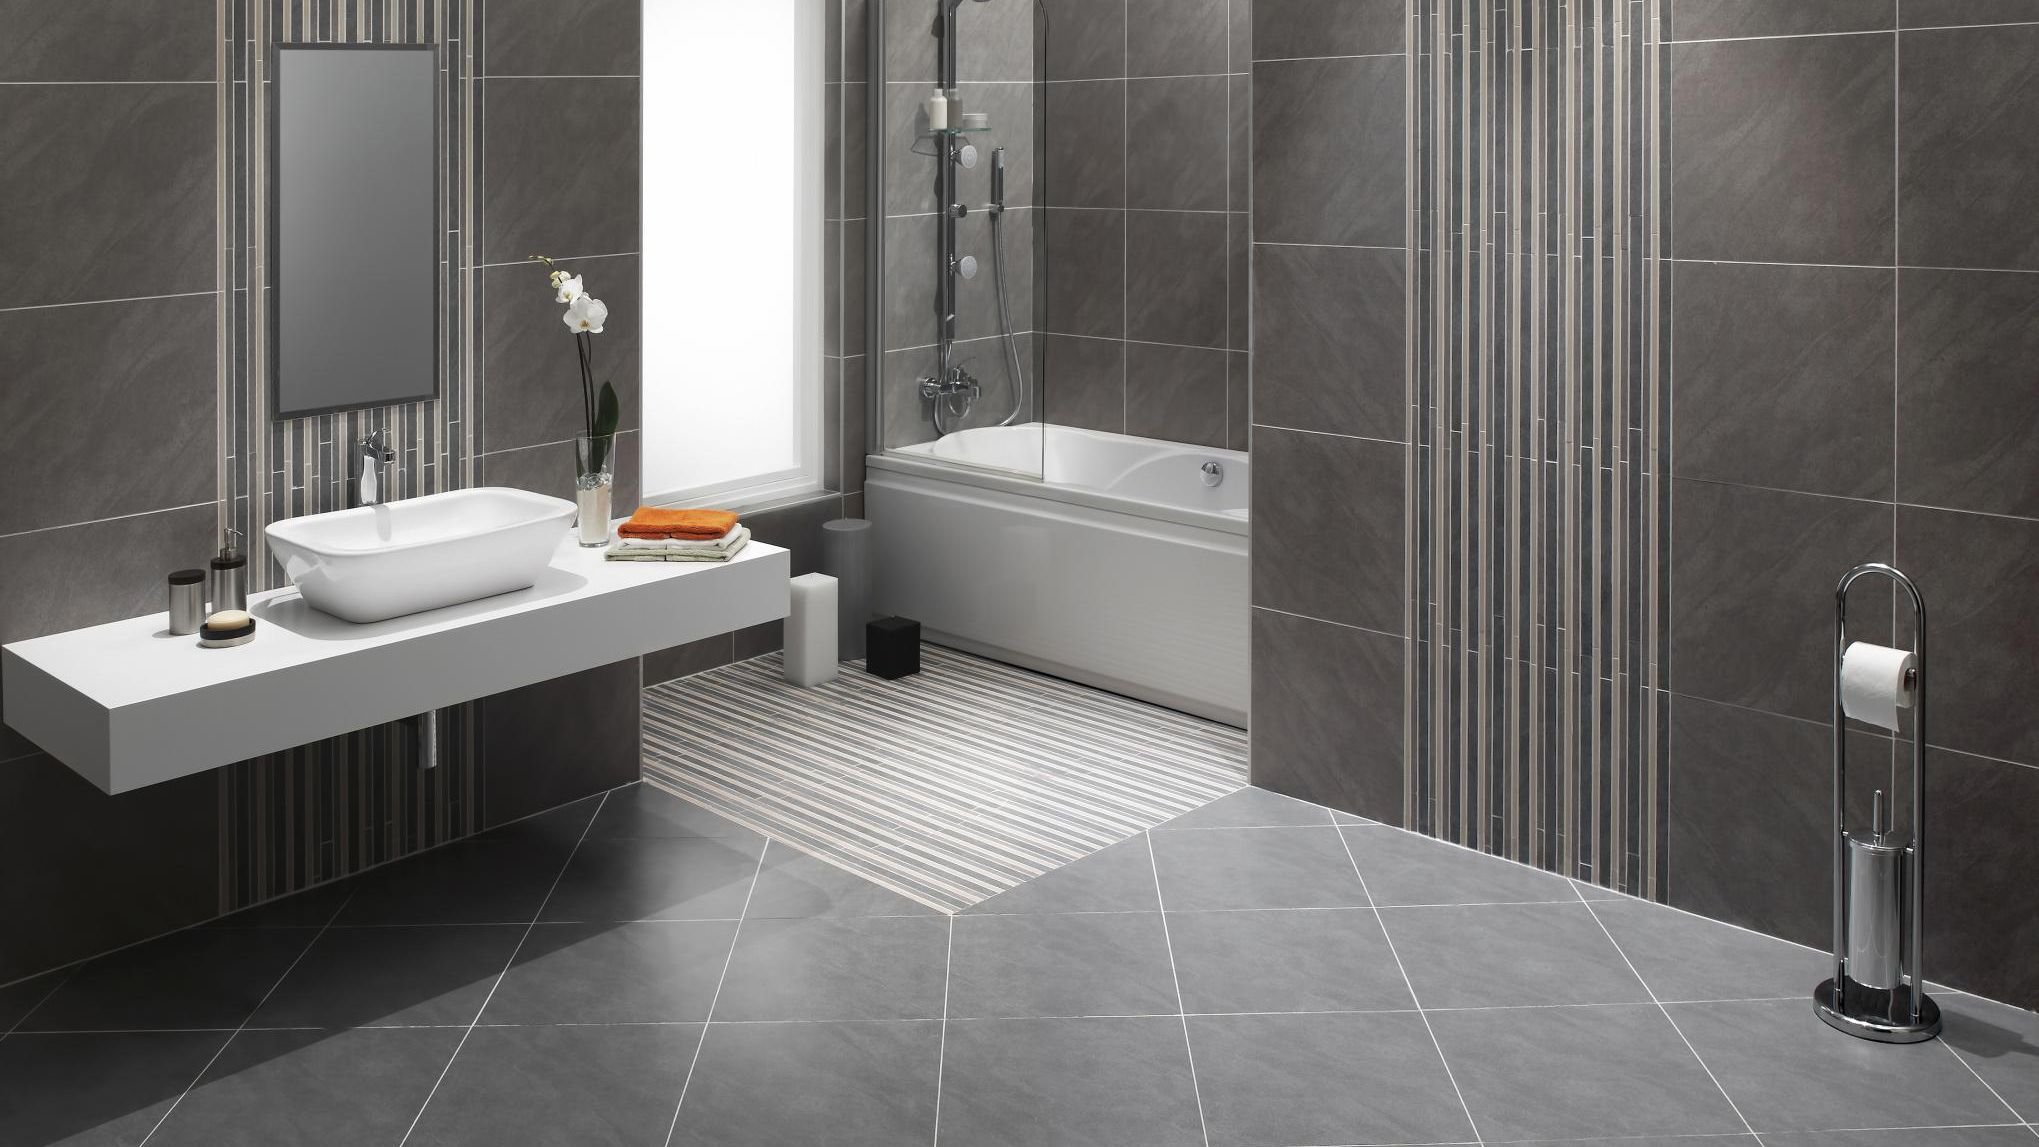 Pros And Cons Of Natural Stone Tile For Bathrooms